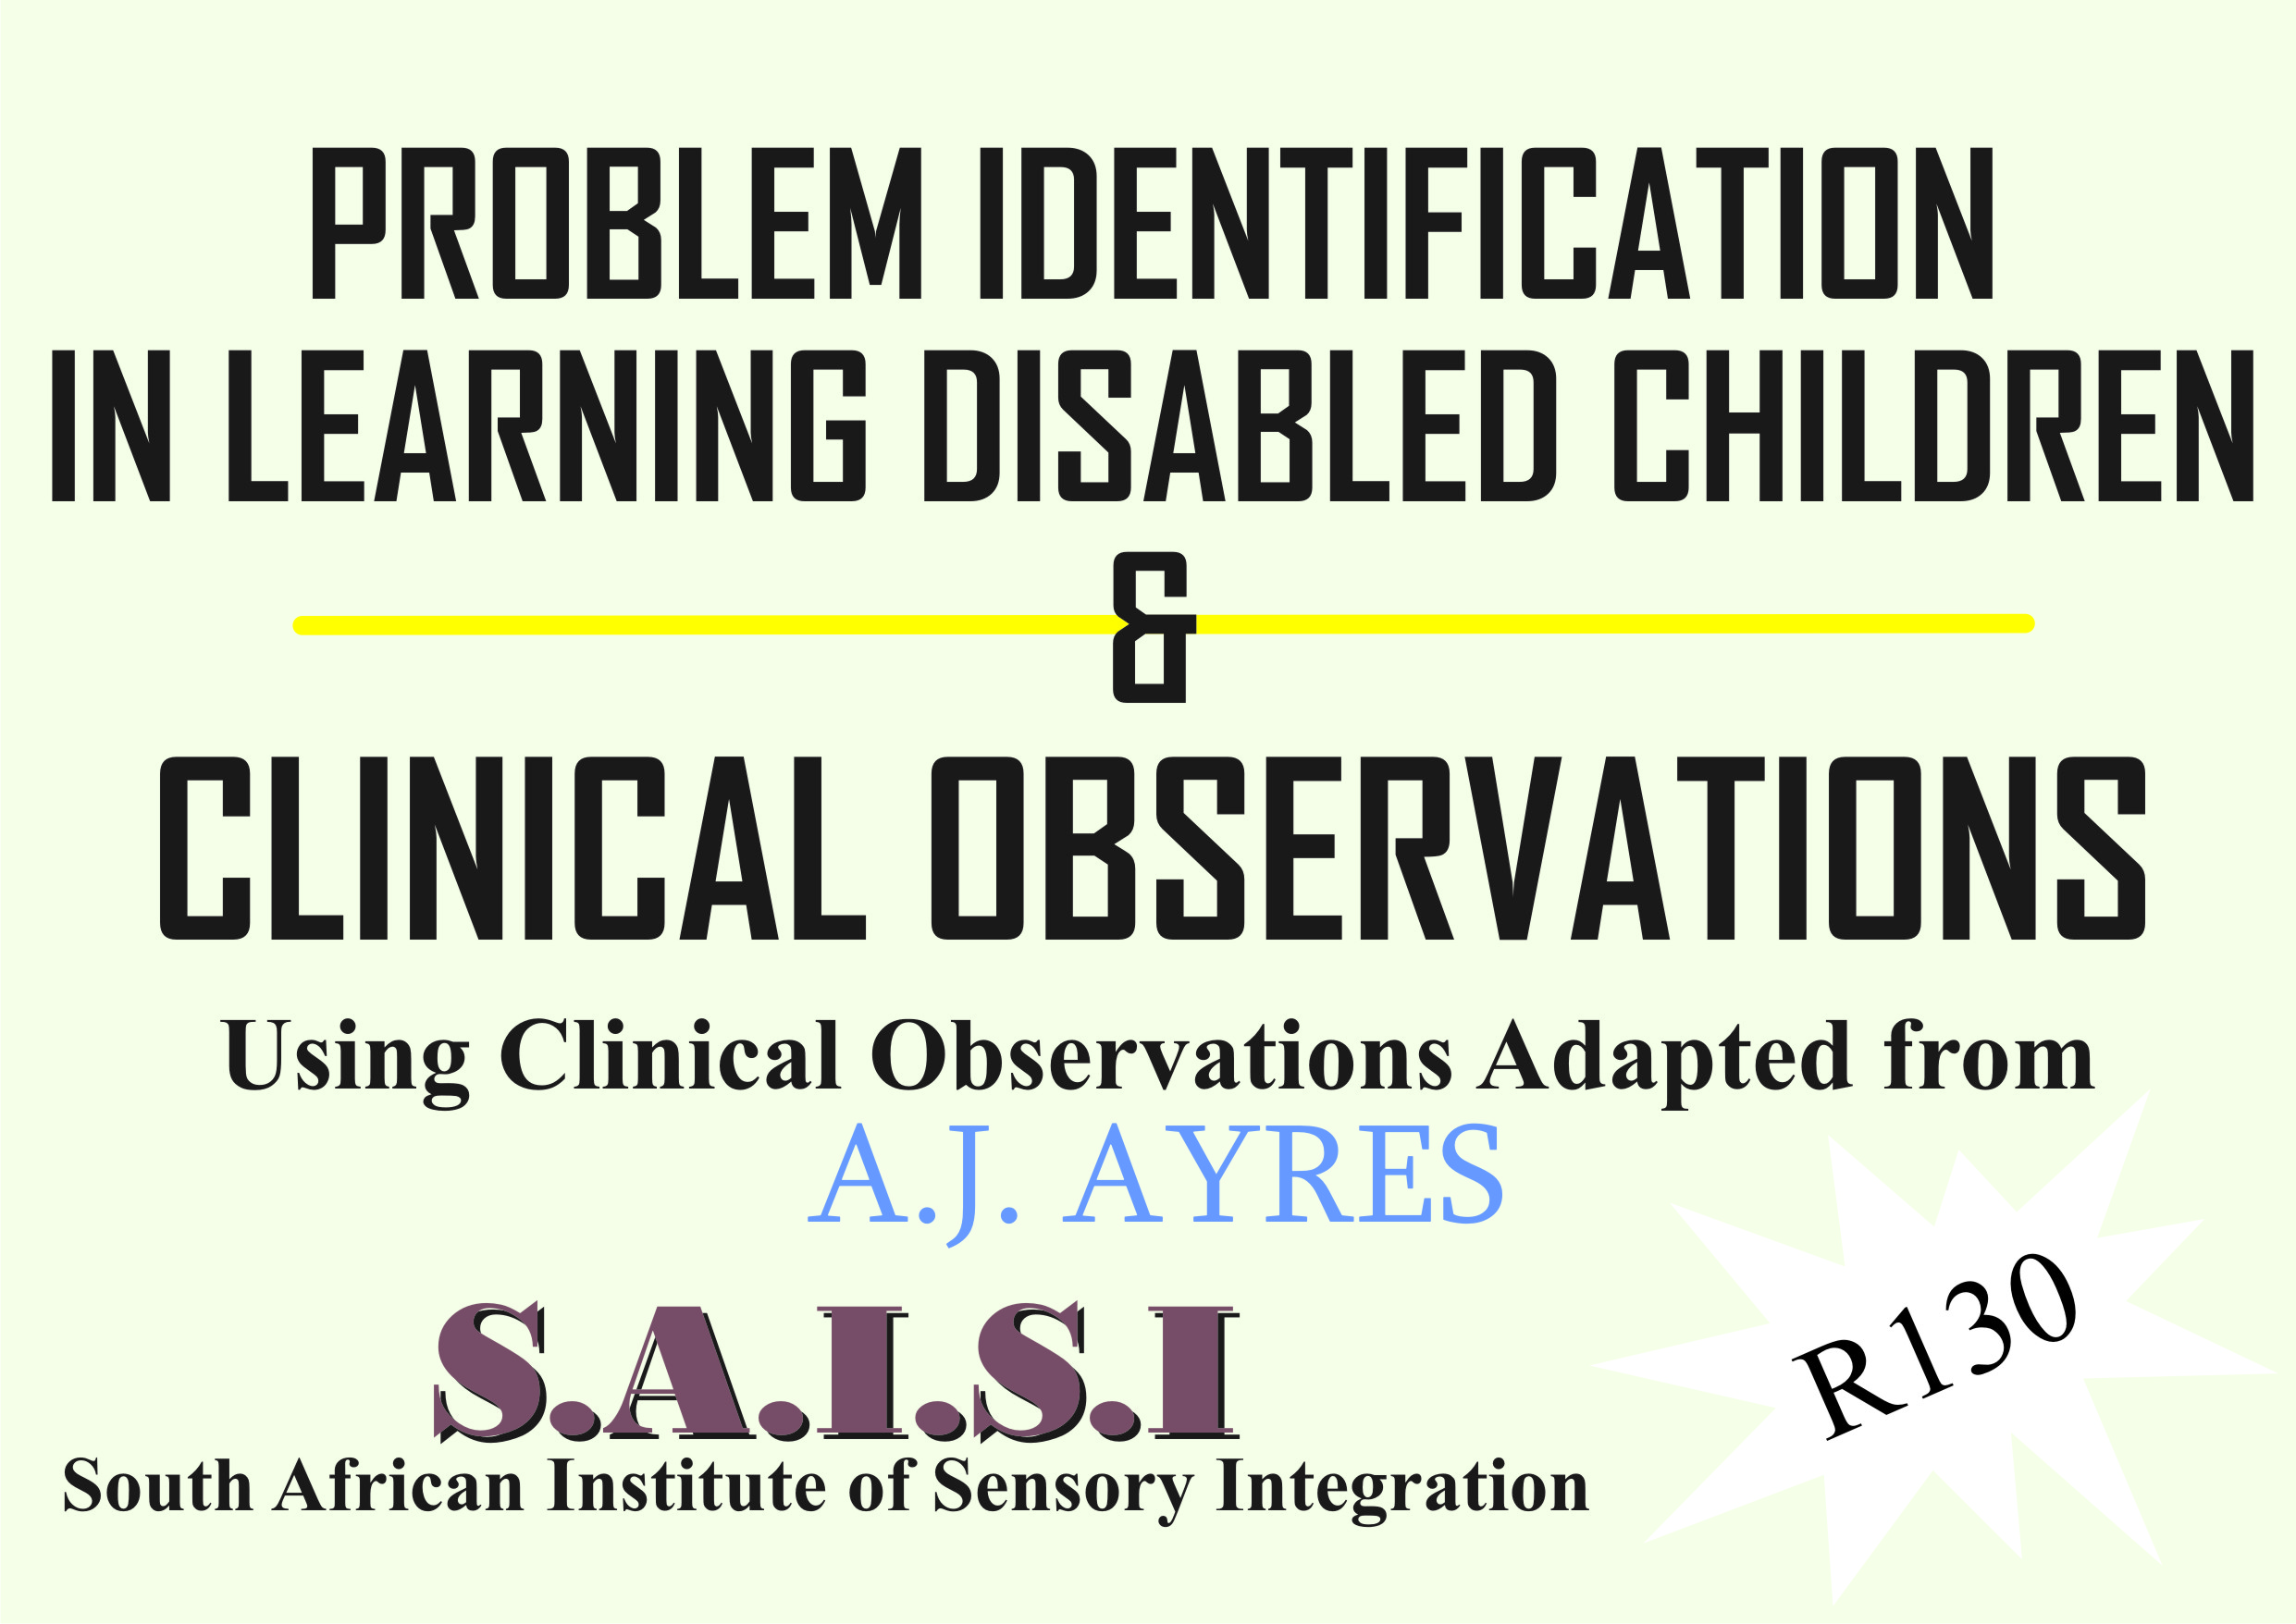 Clinical Observations - SASIC1 (15-19March2021) Overseas only